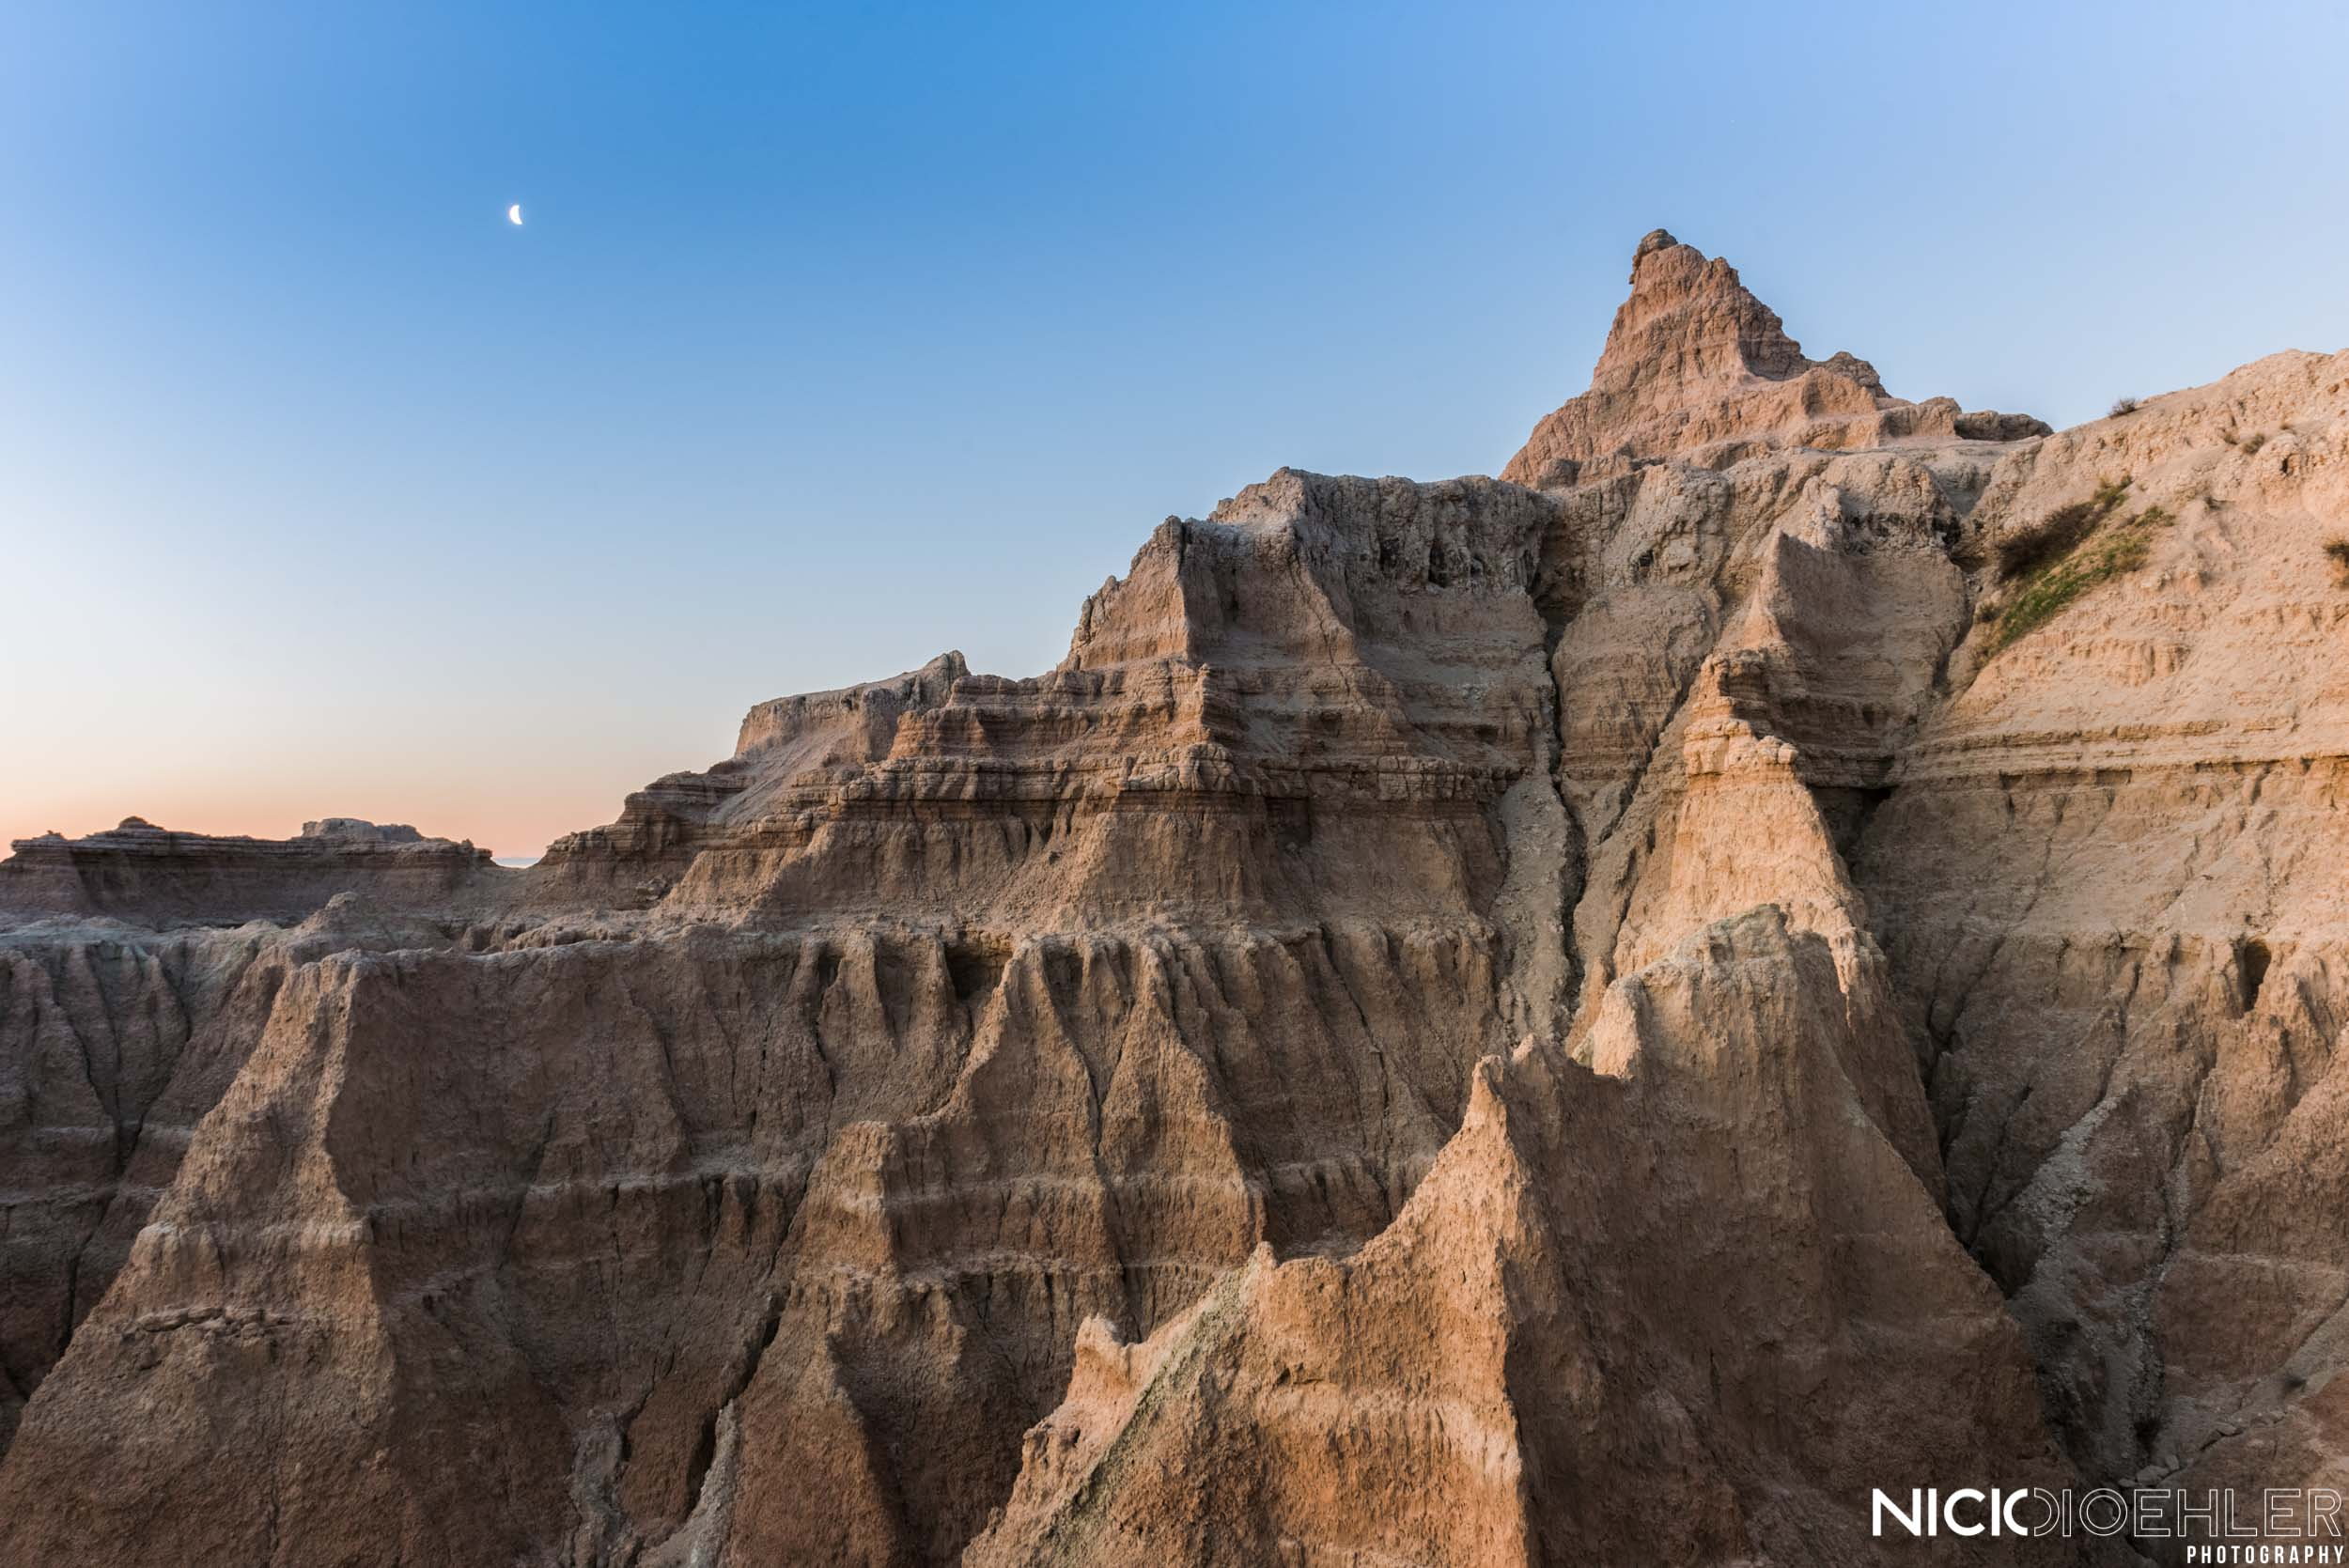 Badlands National Park: Right after the sunrise, this light was giving a nice textural feel along the ridges.